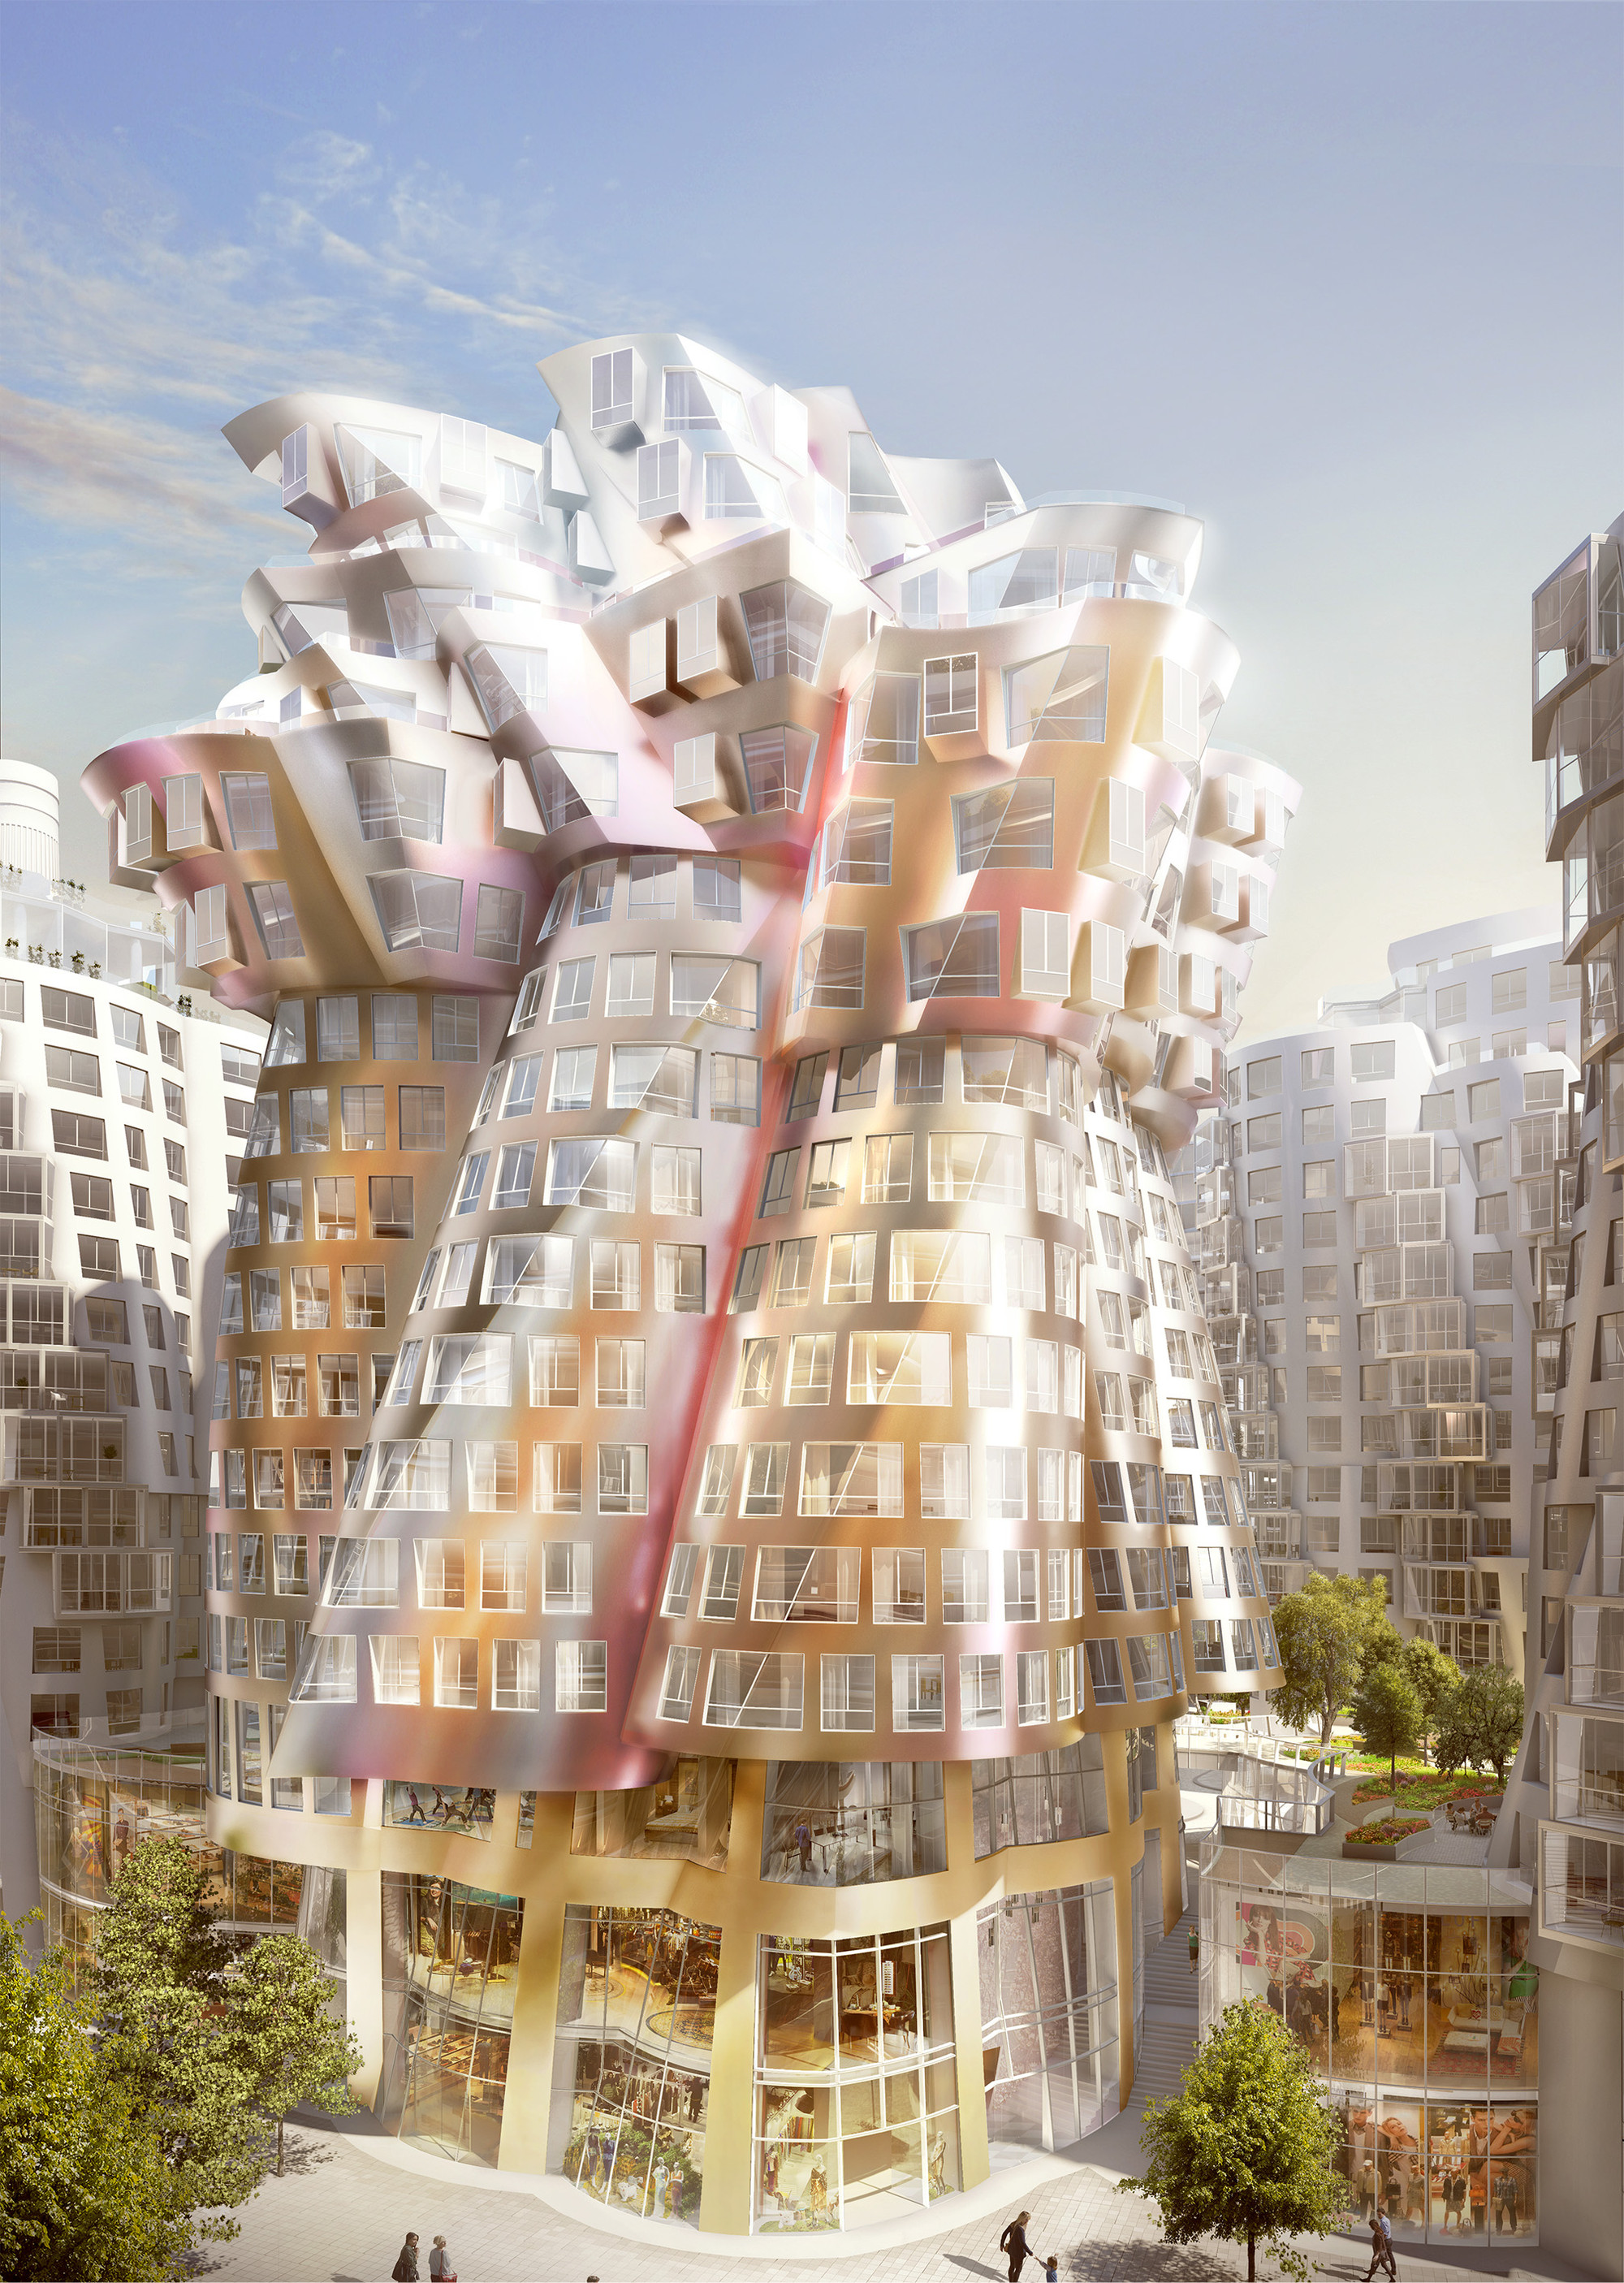 Gallery Of New Images Released Of Foster And Gehry S